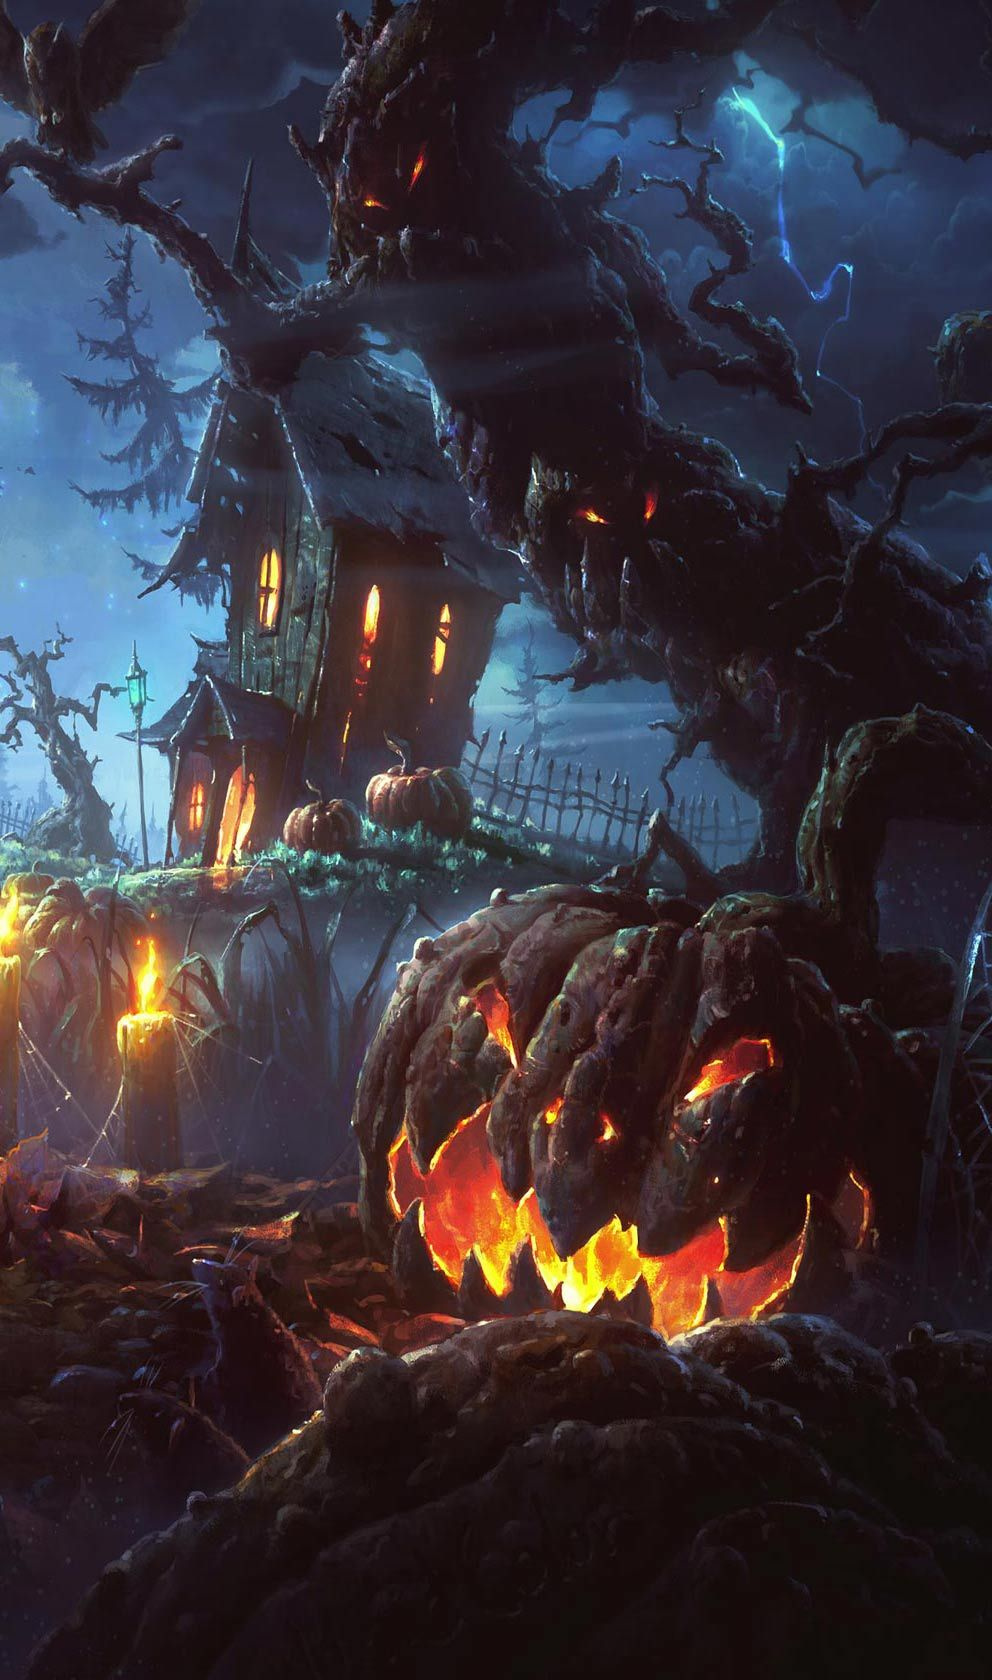 Holiday wallpapers halloween wallpapers http www - Scary halloween wallpaper ...